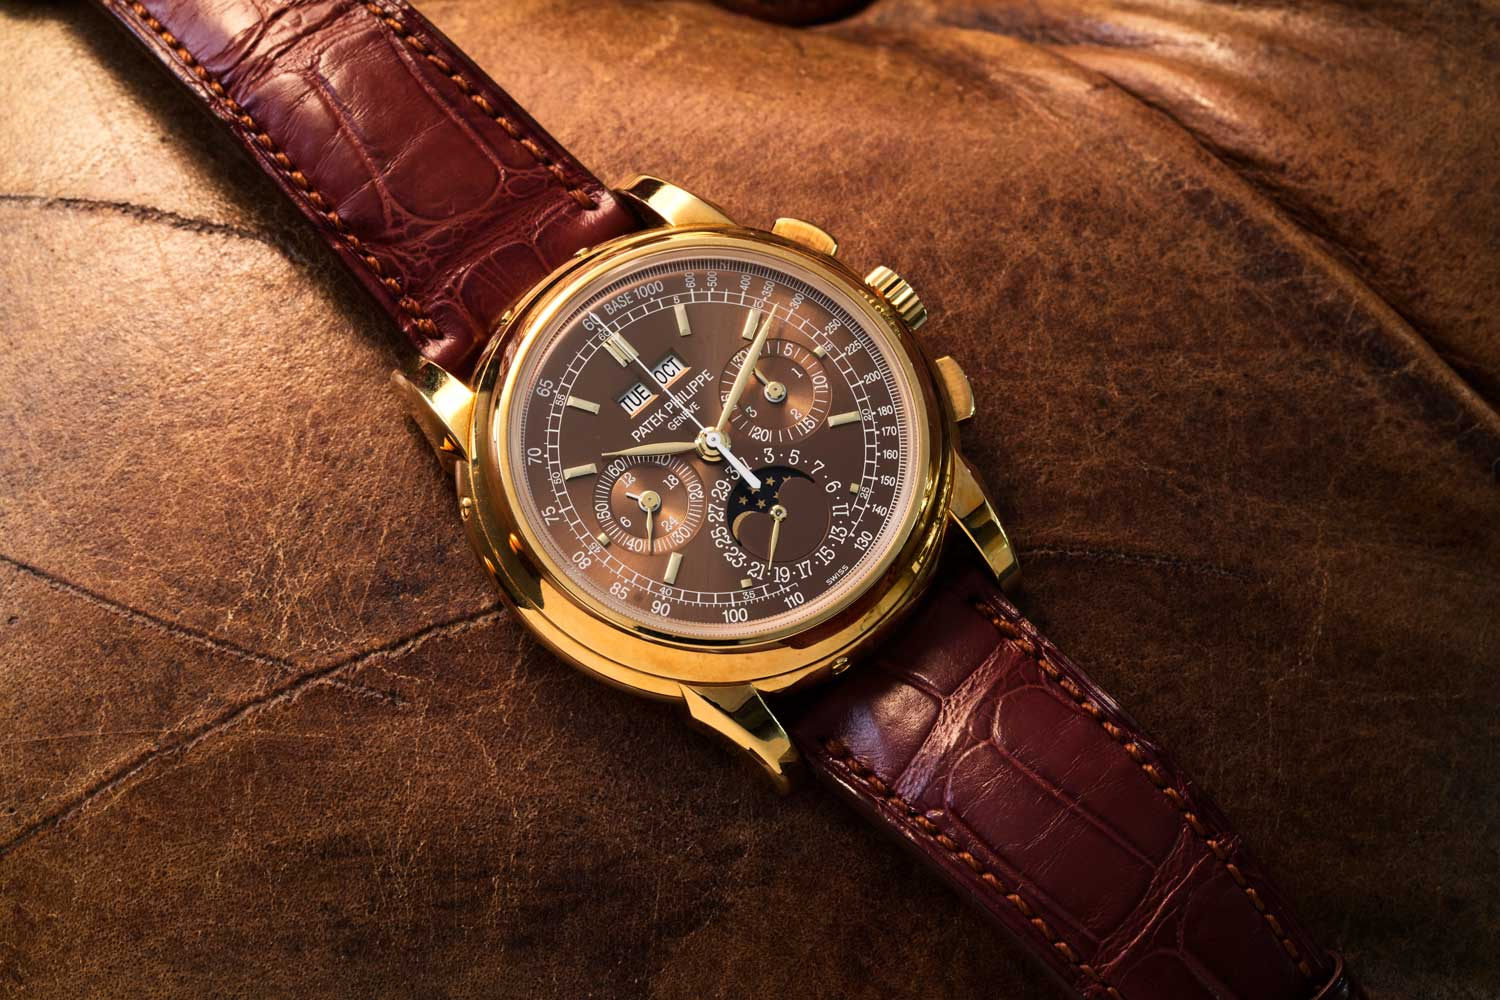 The ref. 5970 reminds Thierry Stern of a fond memory about his grandfather. (©Revolution)